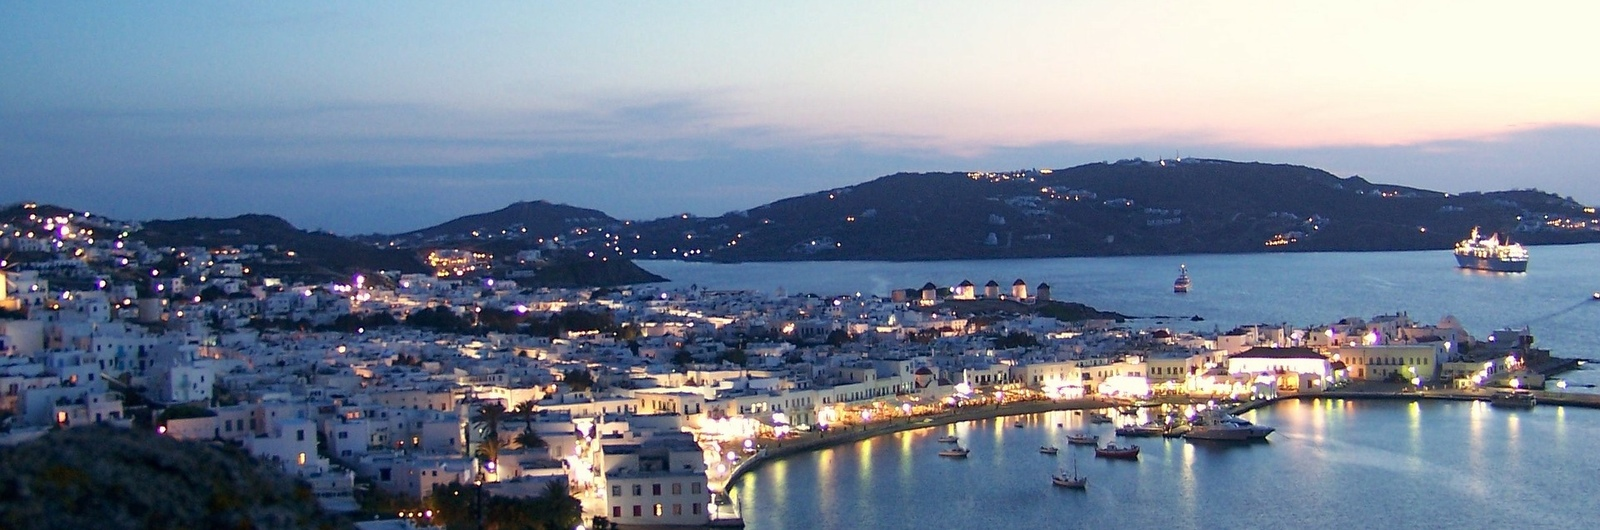 mykonos city header